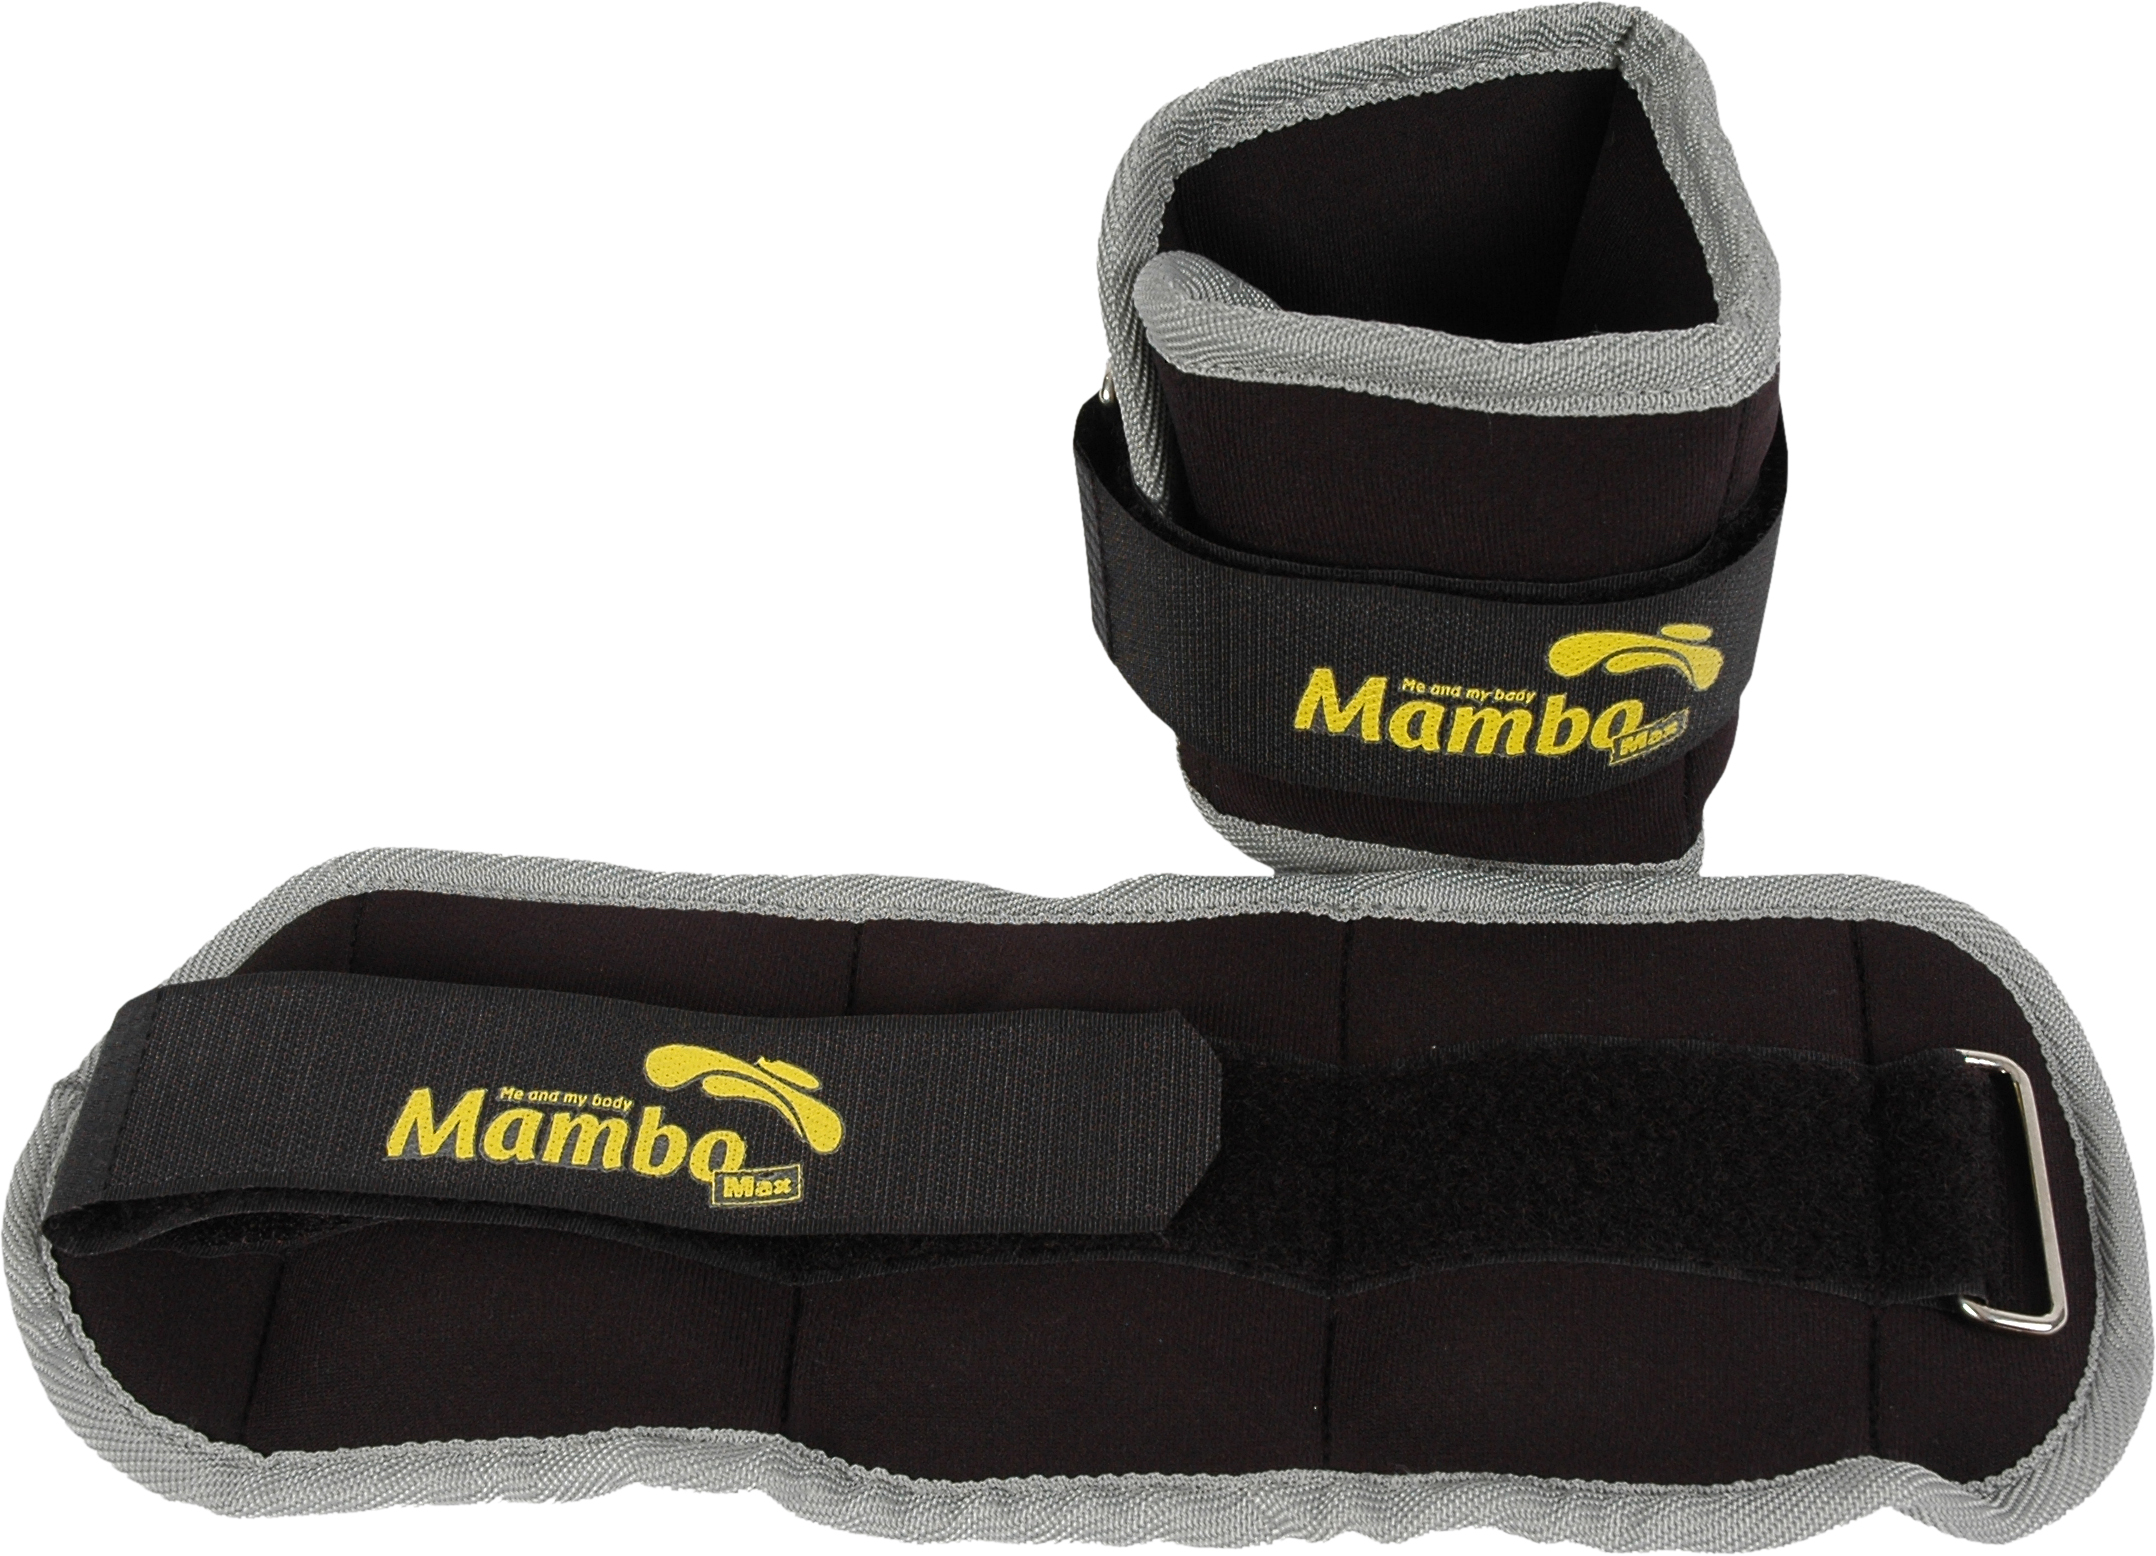 WRIST & ANKLE WEIGHT 5 KG PAIR